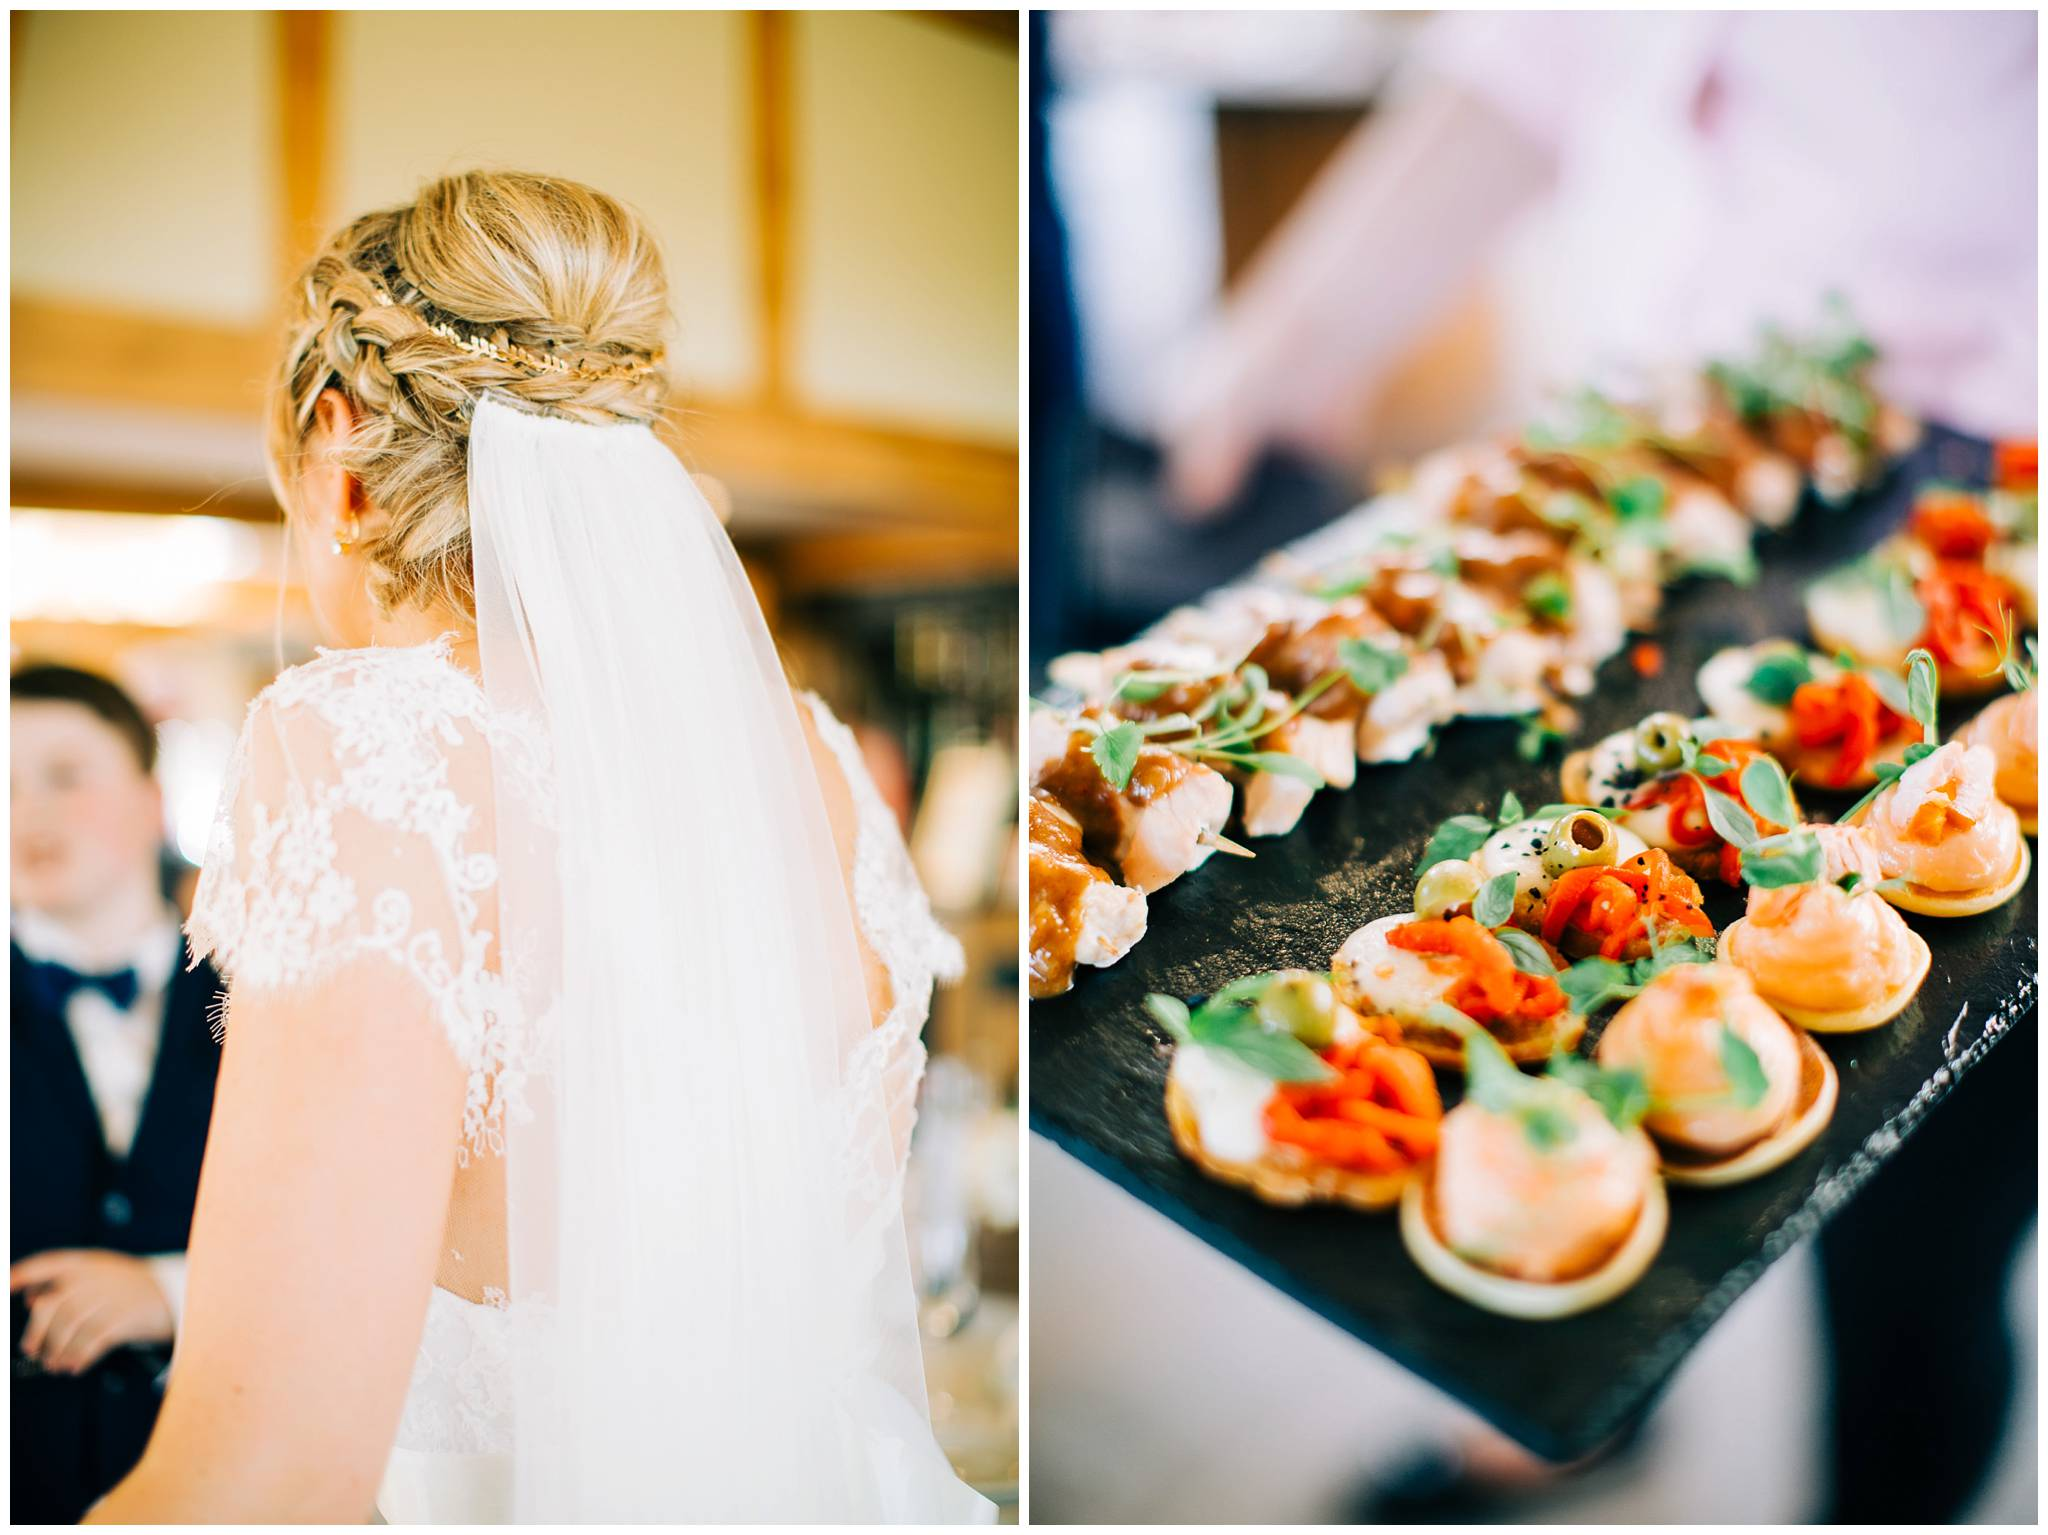 the brides beautiful plait updo woth veil and a close up of the wedding canapes